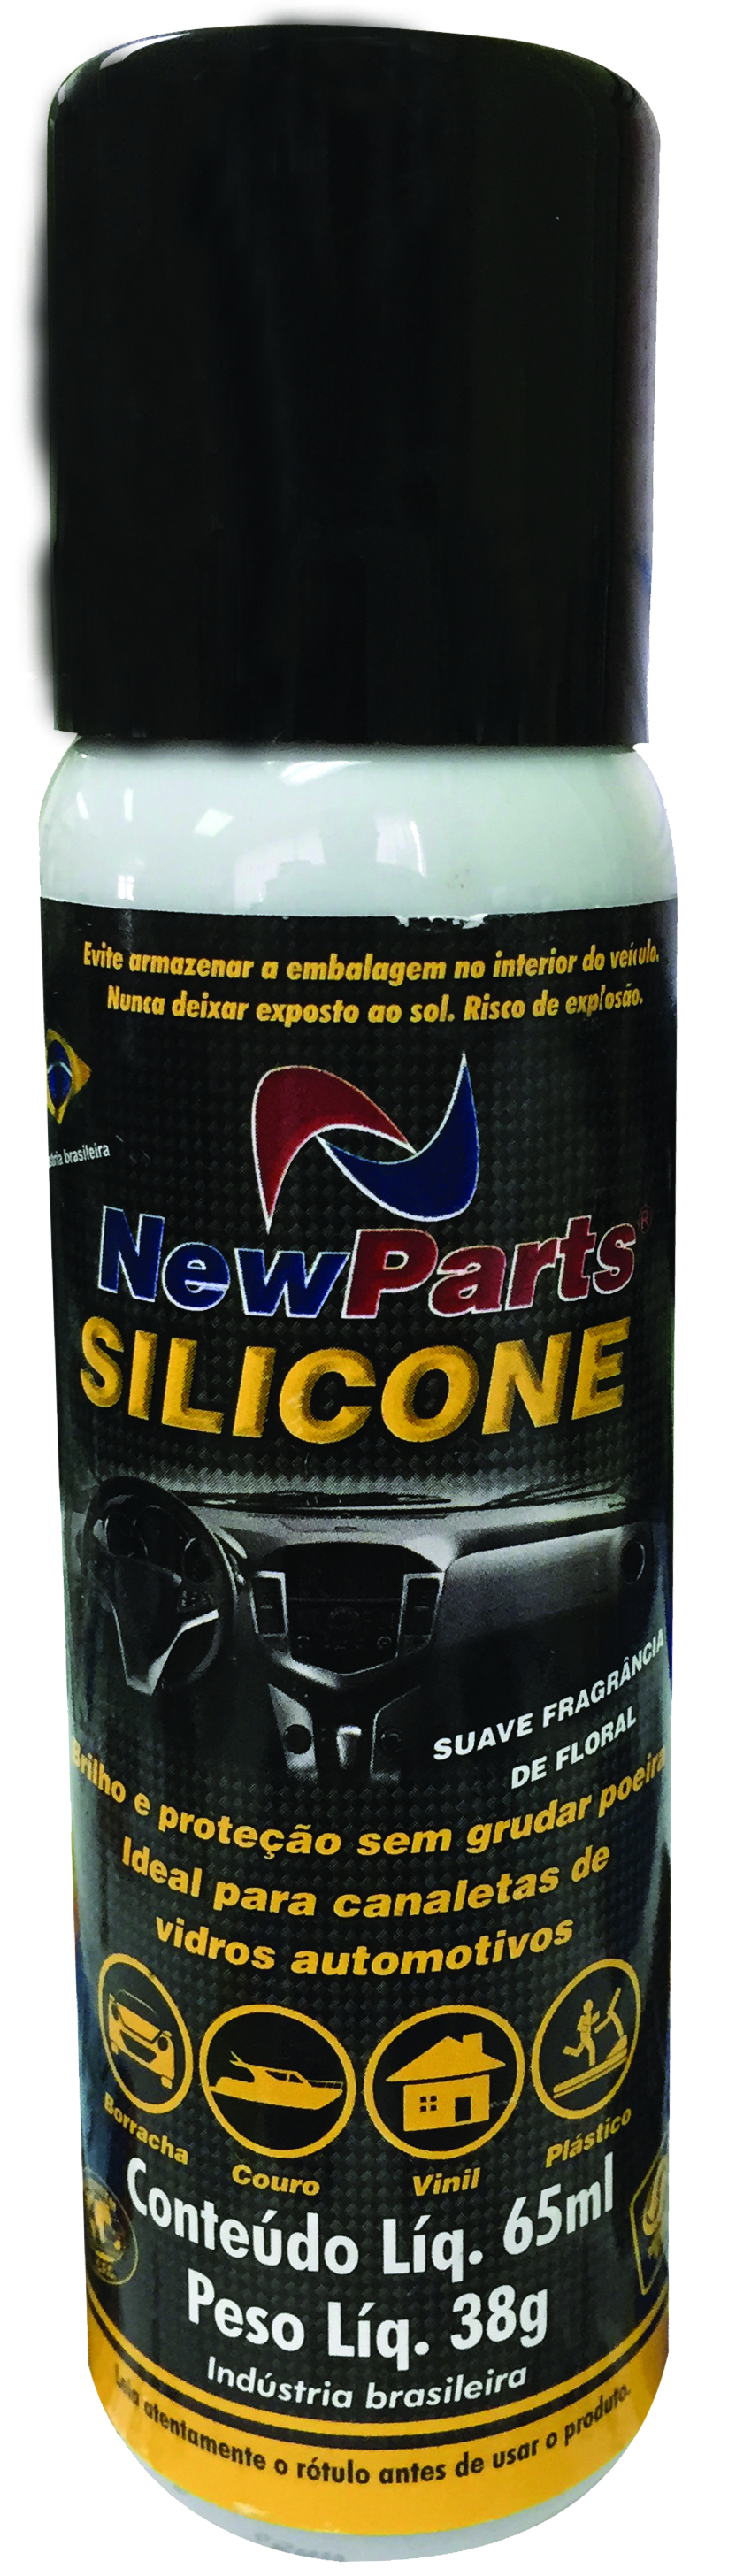 Silicone spray 65ml